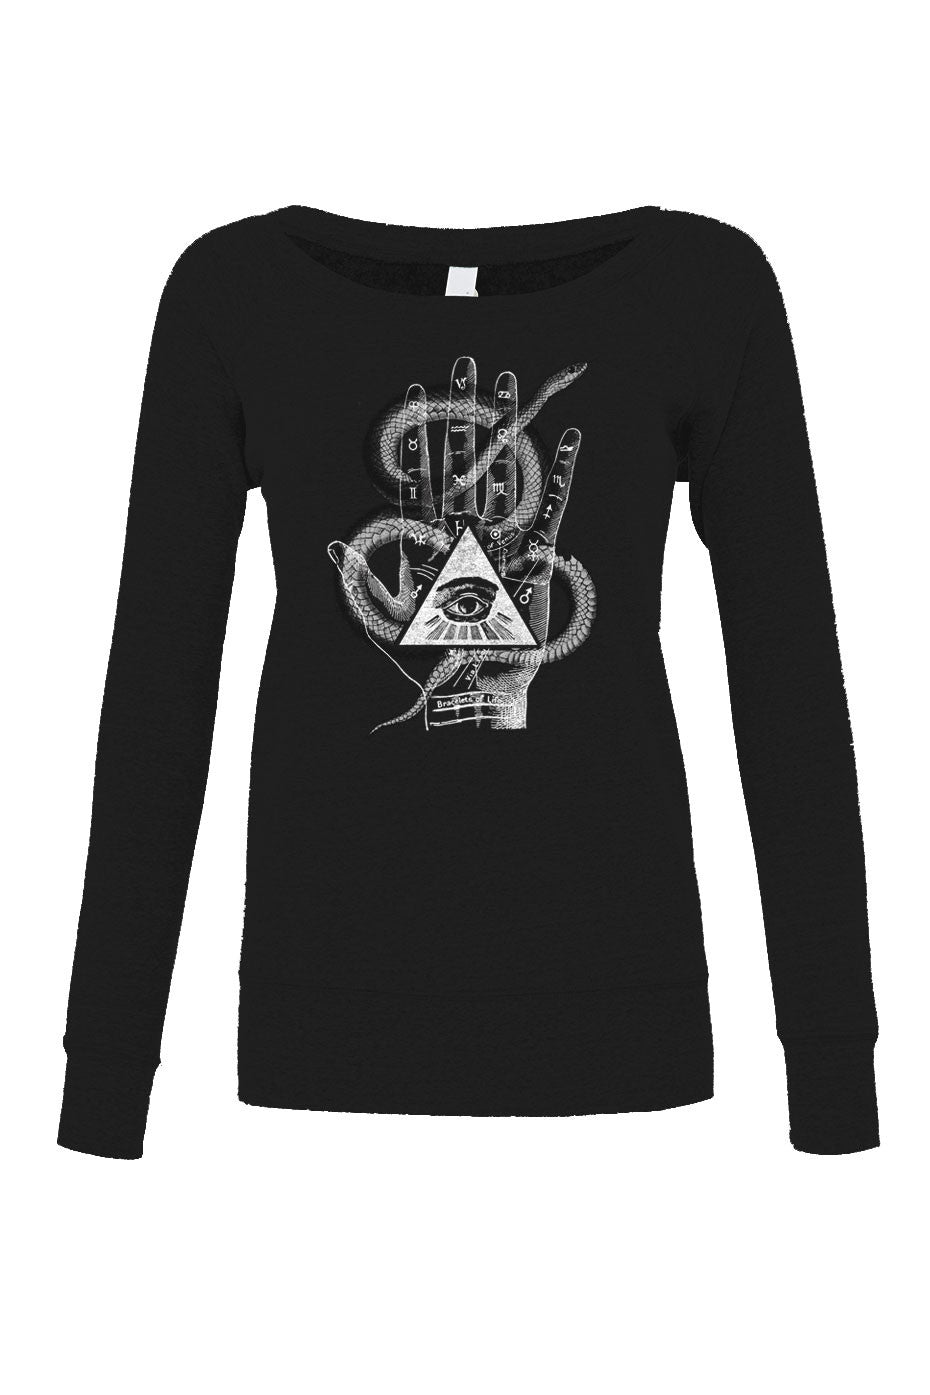 Women's Palmistry Gypsy Collage Scoop Neck Fleece - Juniors Fit